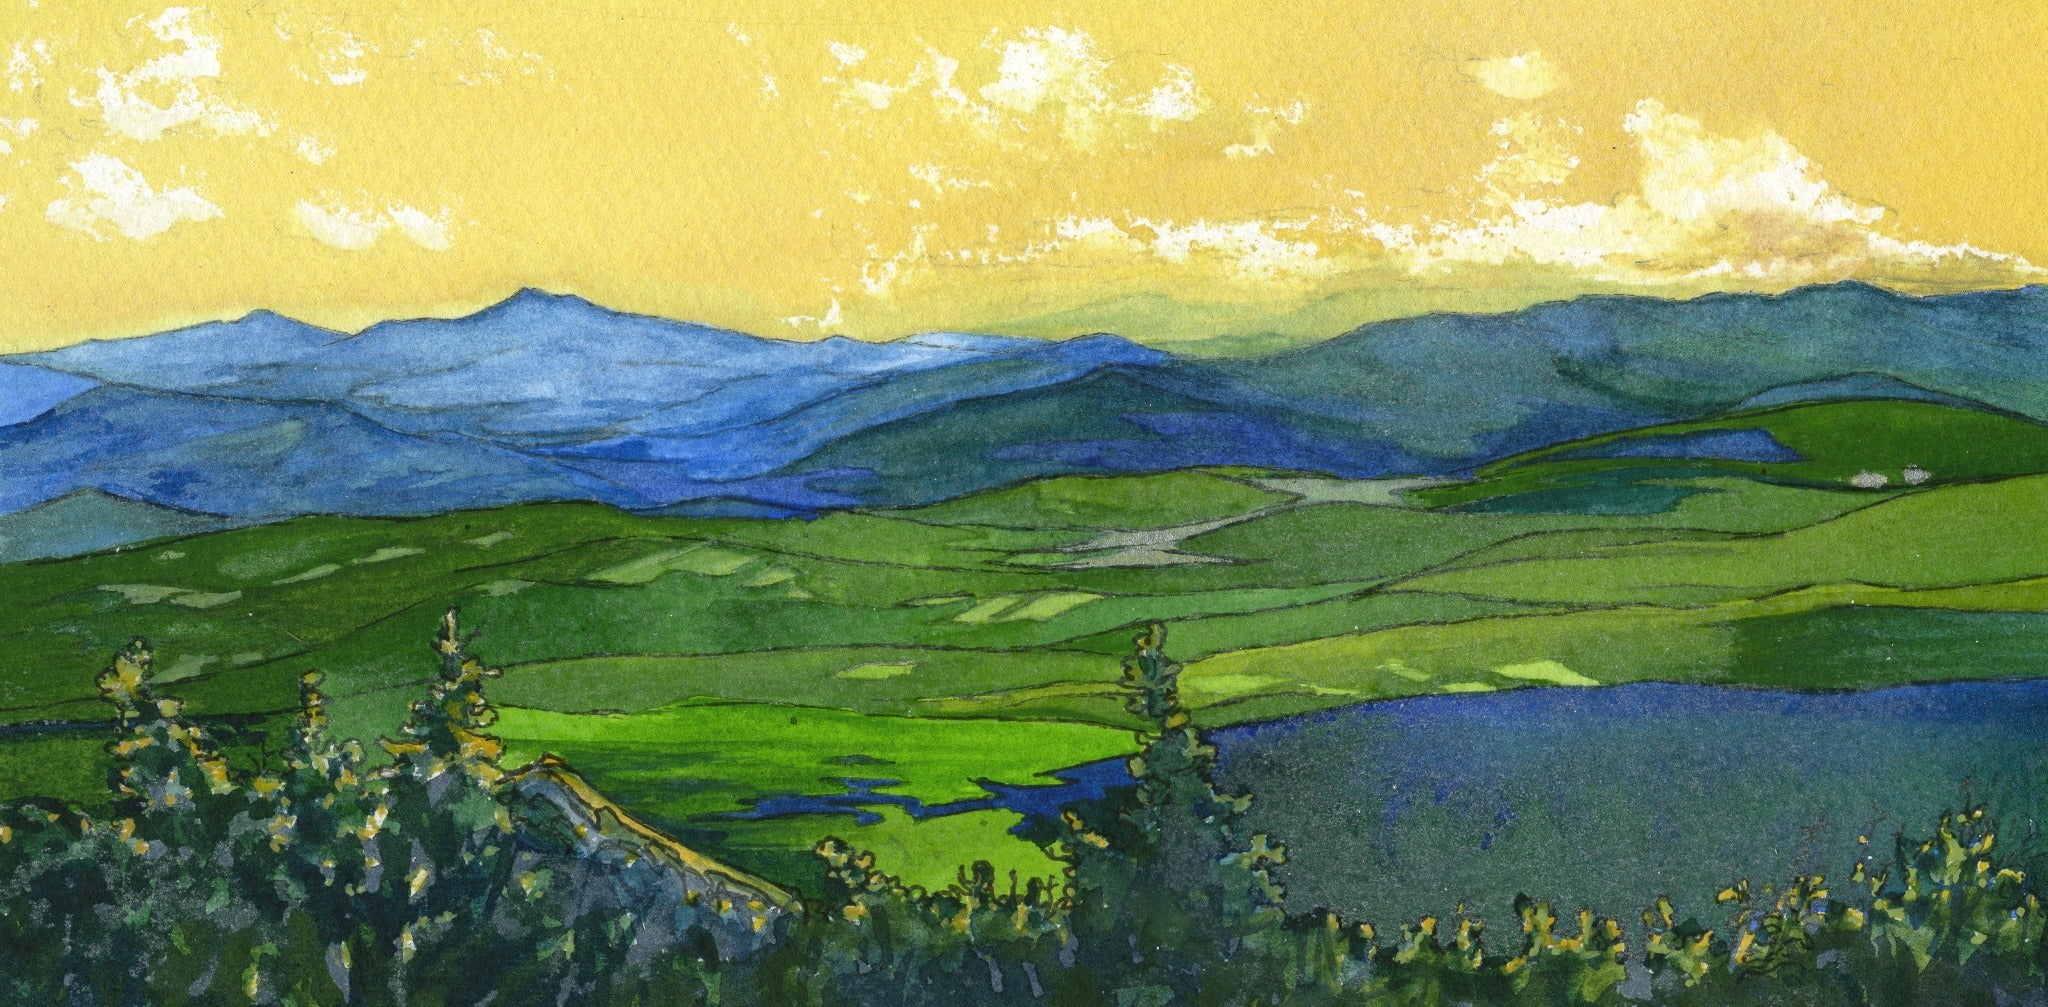 """Across the Valleys,"" framed 4.5x9 inch watercolor and ink painting on paper"